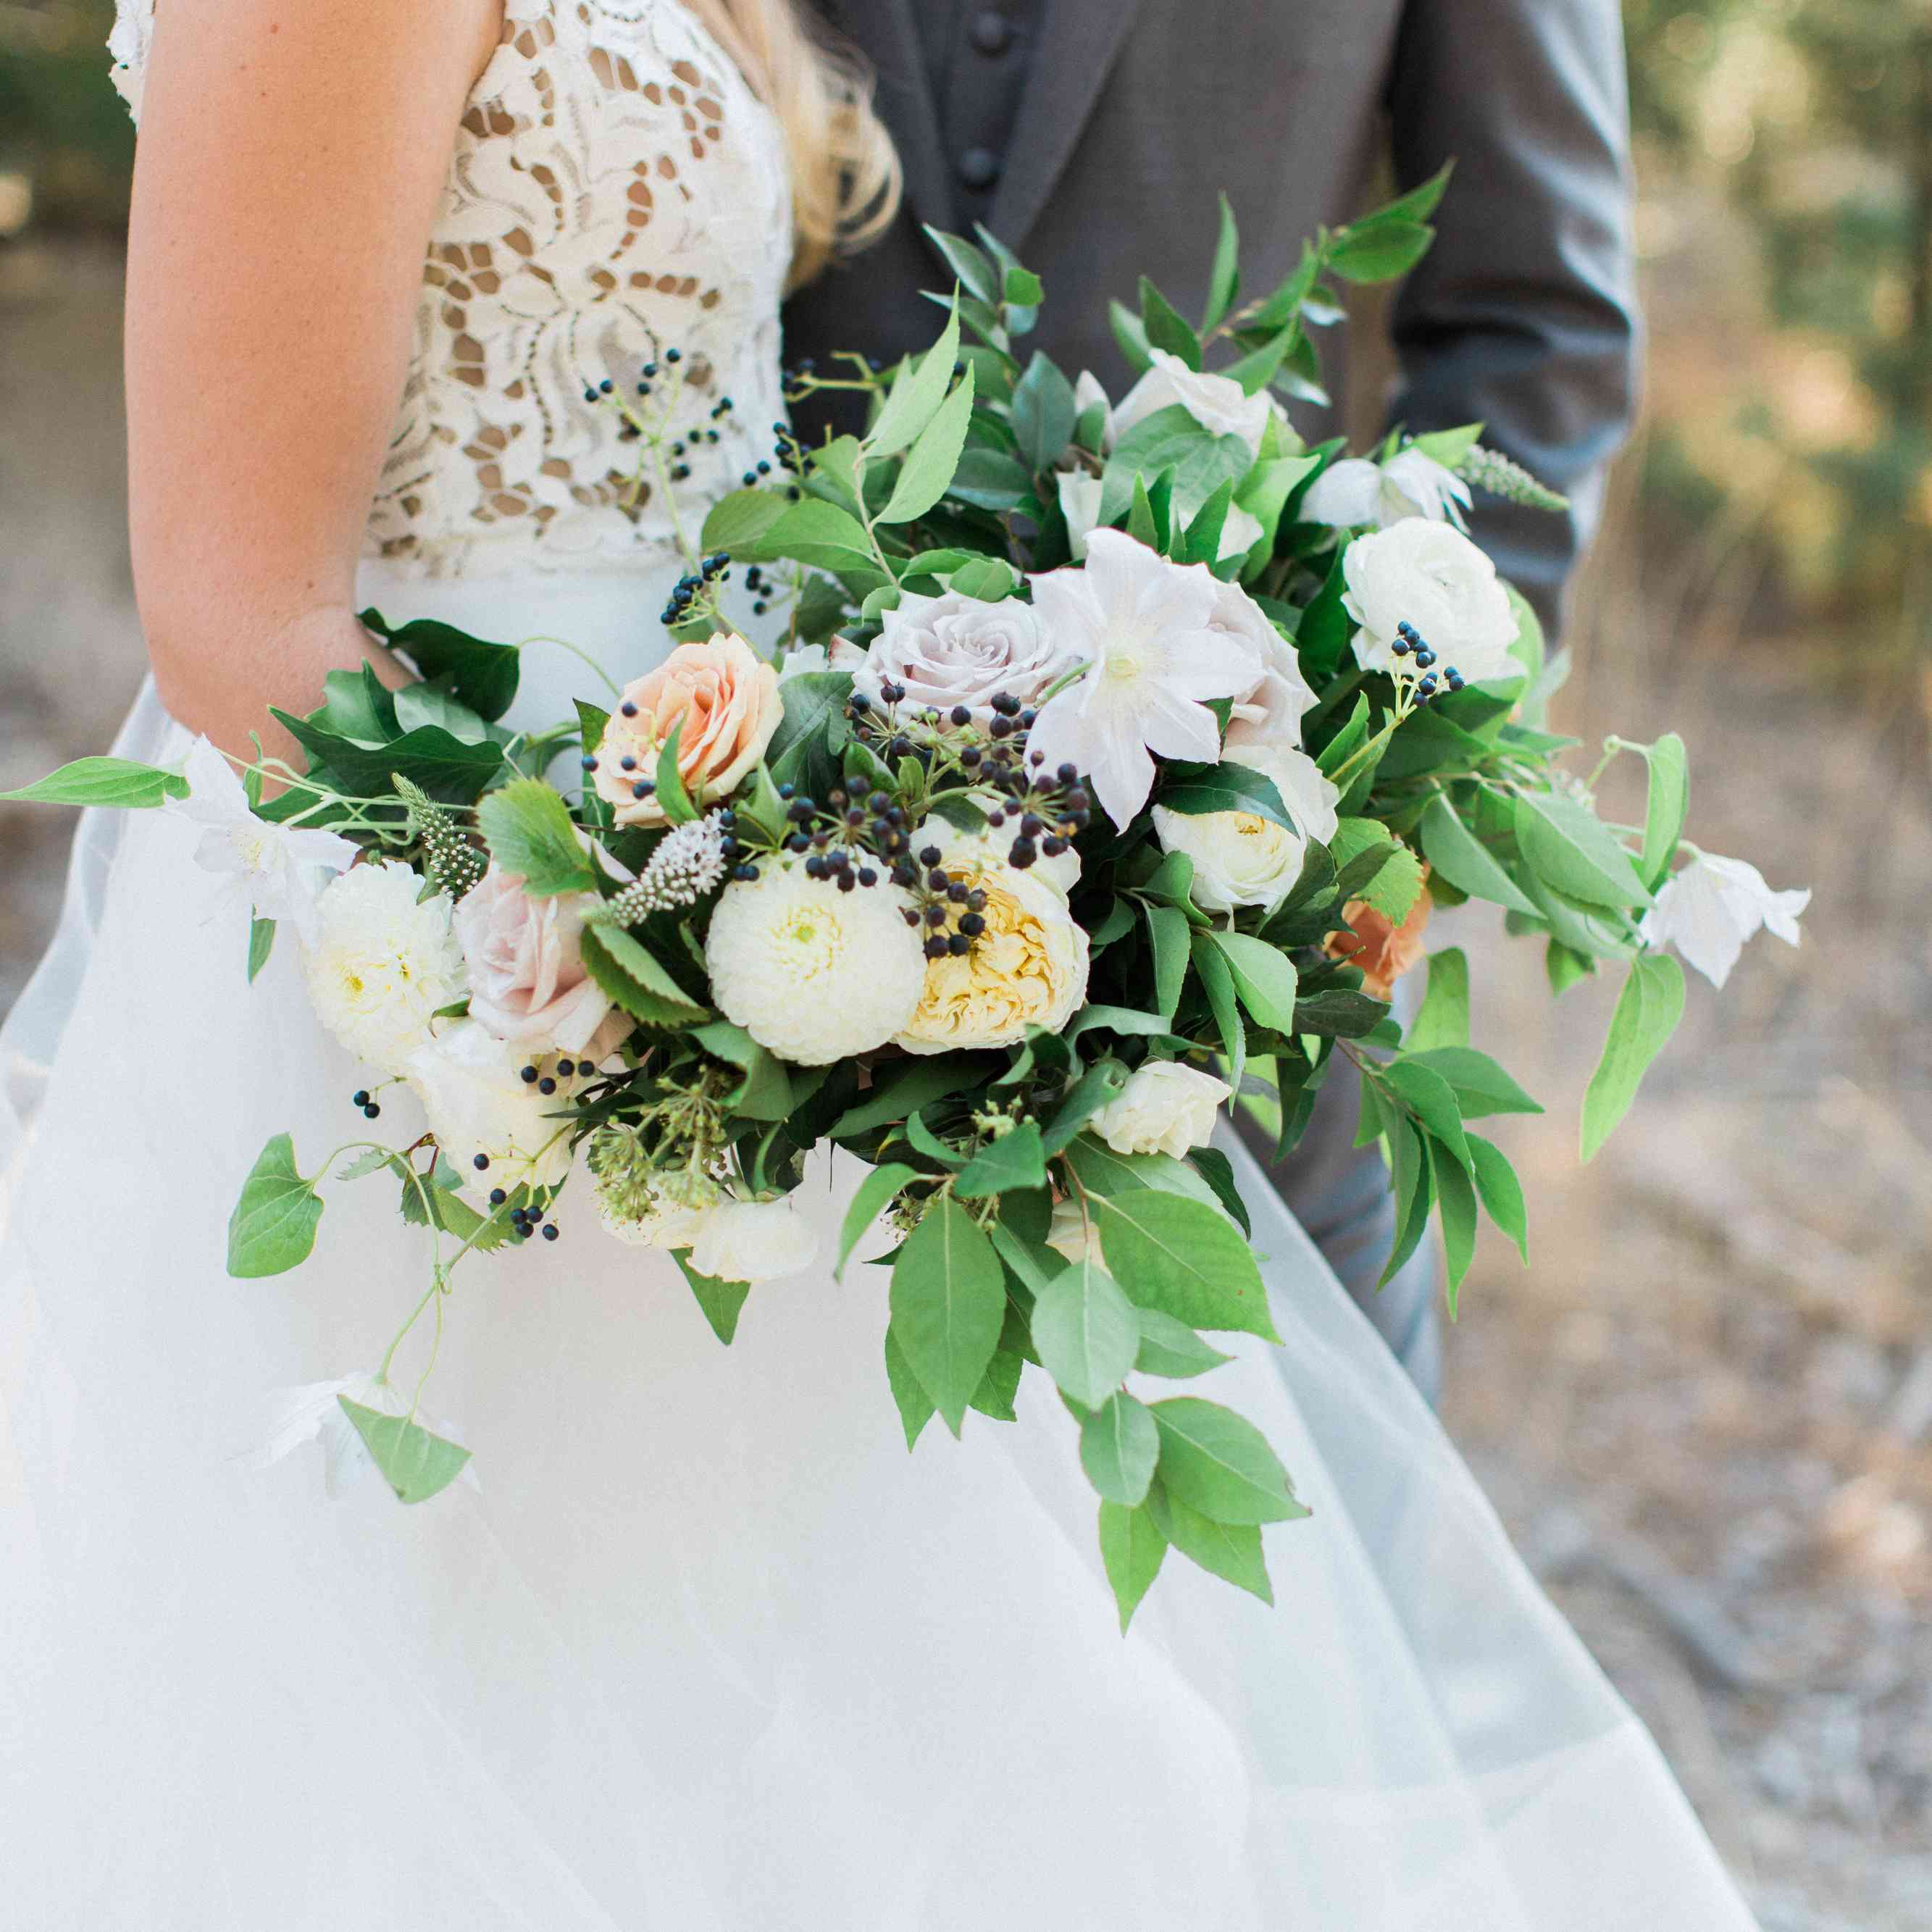 Bride holding bouquet of rose, clematis, dahlia, and veronica with berries